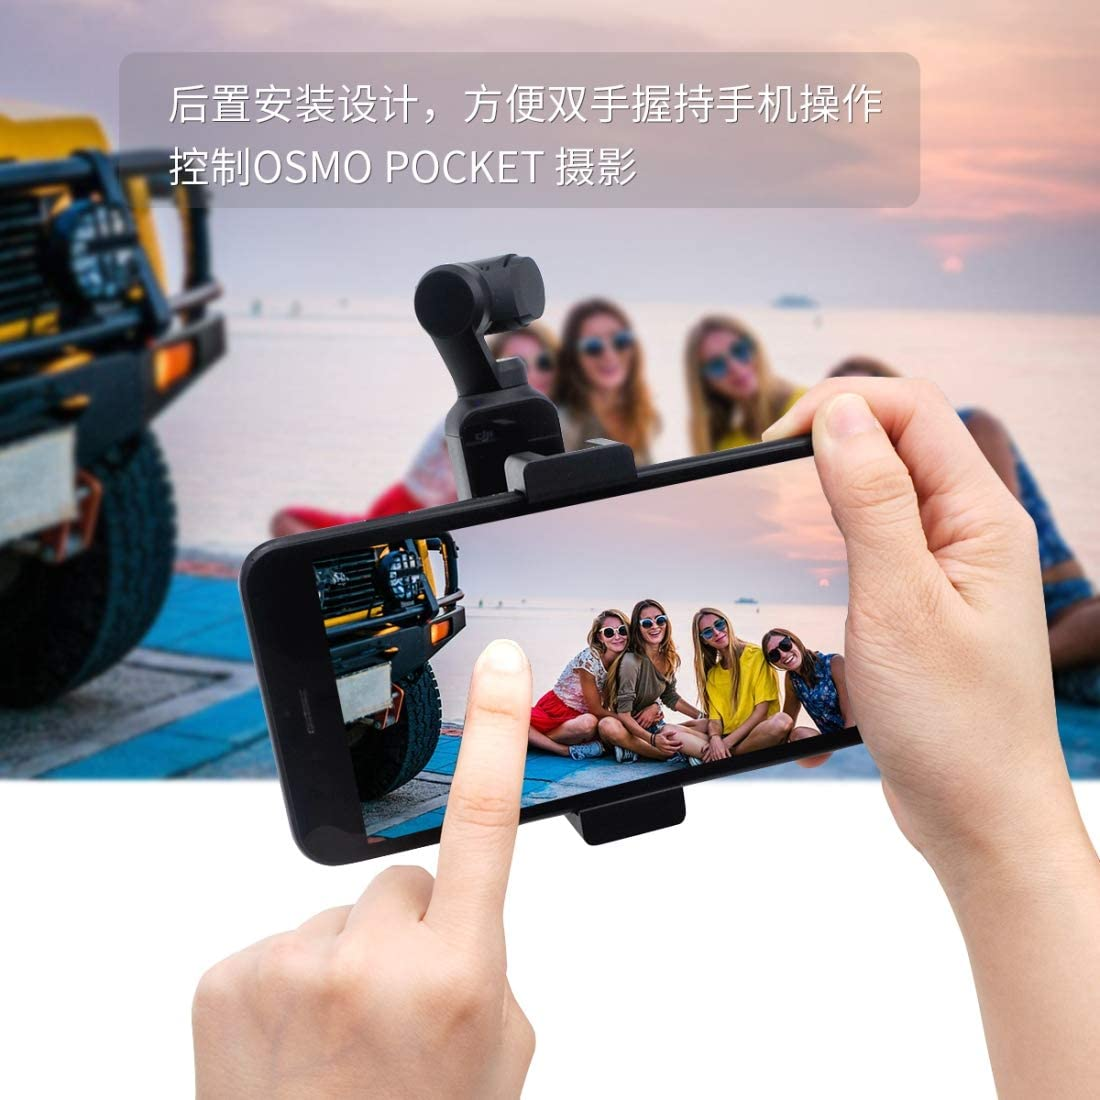 OSMO Pocket Accessories Hyx Metal Holder Mobile Phone Holder Bracket Expansion Accessories with Android USB Data Cable for DJI OSMO Pocket